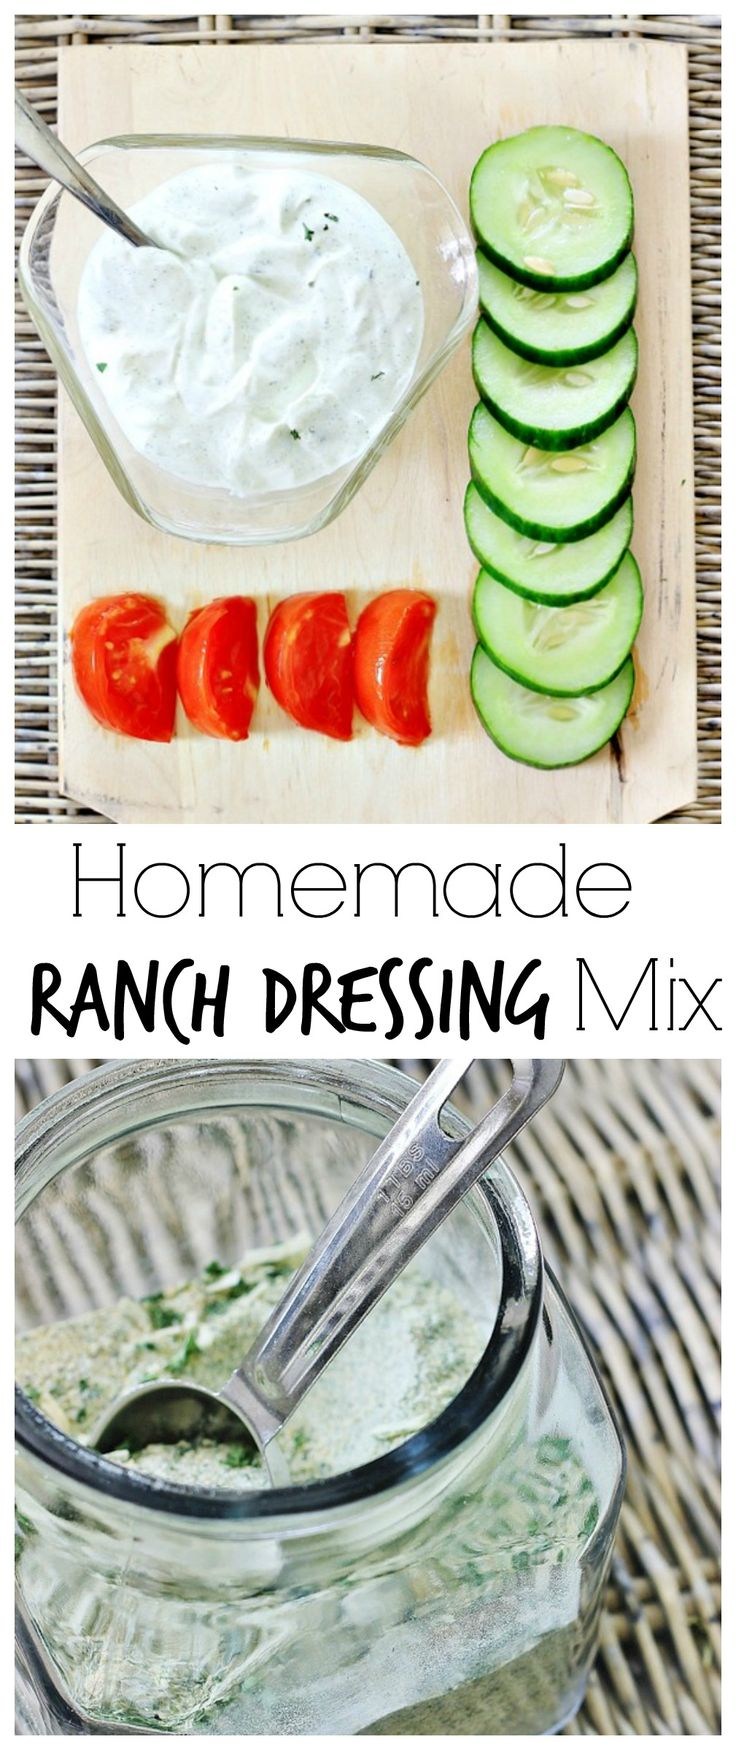 homemade ranch dressing mix recipe!